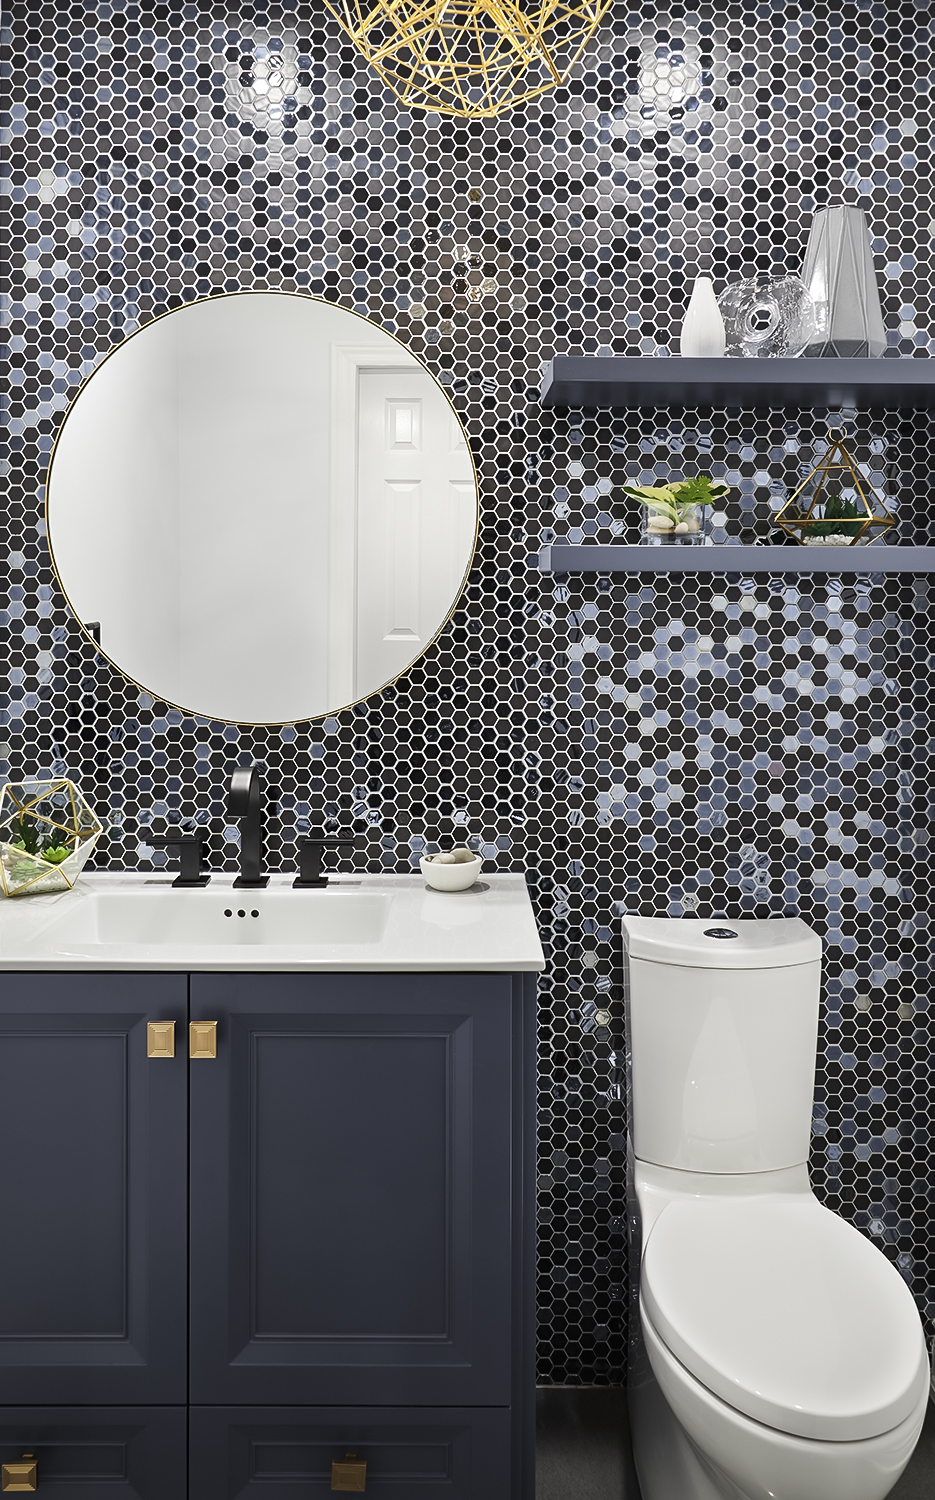 Indigo Vanity, champagne gold hardware, circular mirror, Kohler toilet, floating shelves and stunning feature Tile